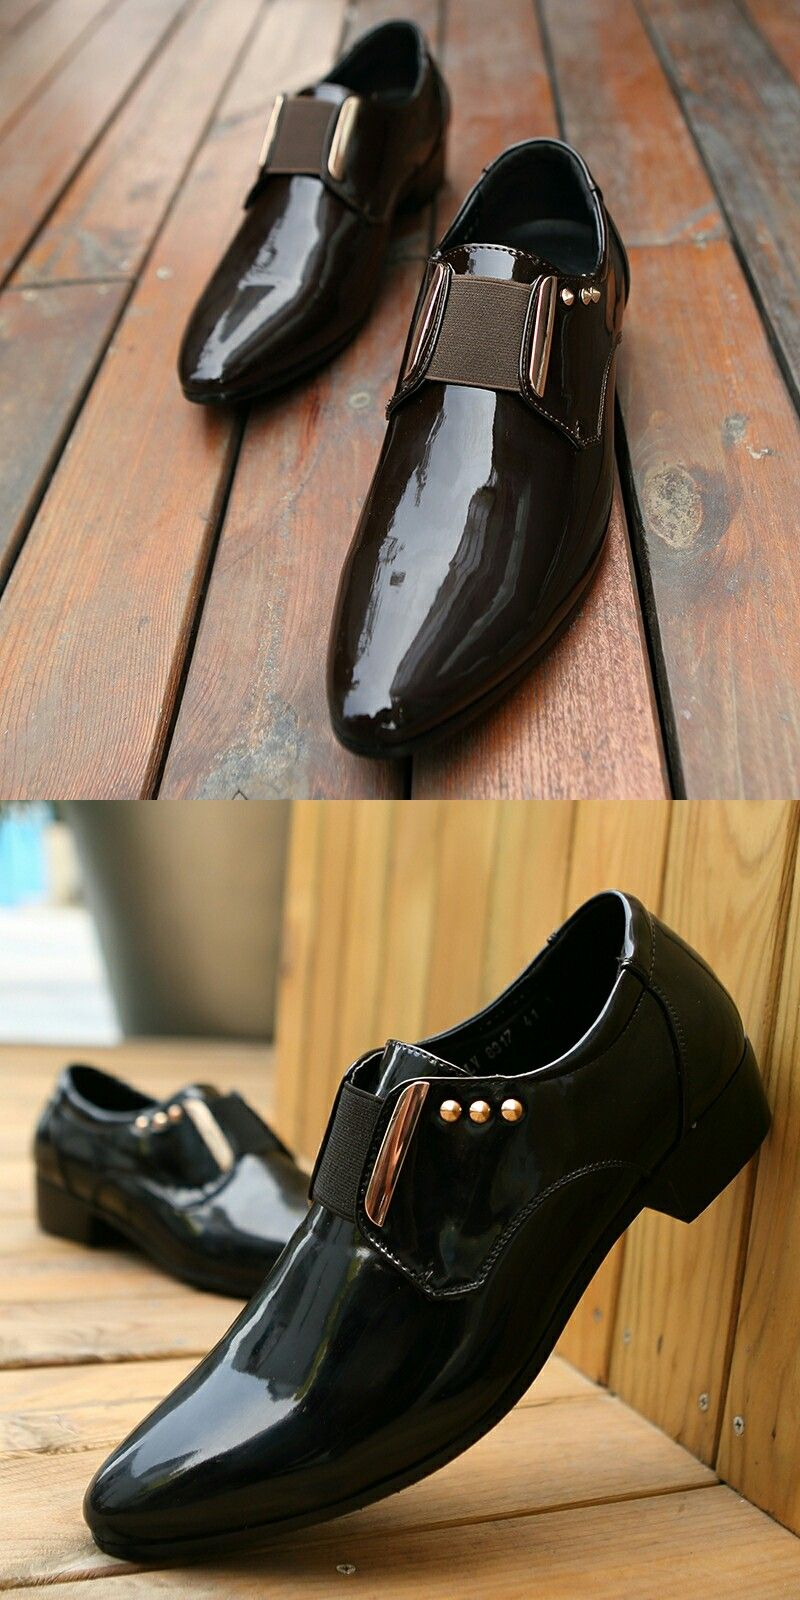 Elegant Men Dress Shoes Patent Leather Black Business Wedding Shoes Flats  Pointed Toe Shining Metalic Big Size 45 46 US 10 10.5 537158891bf8